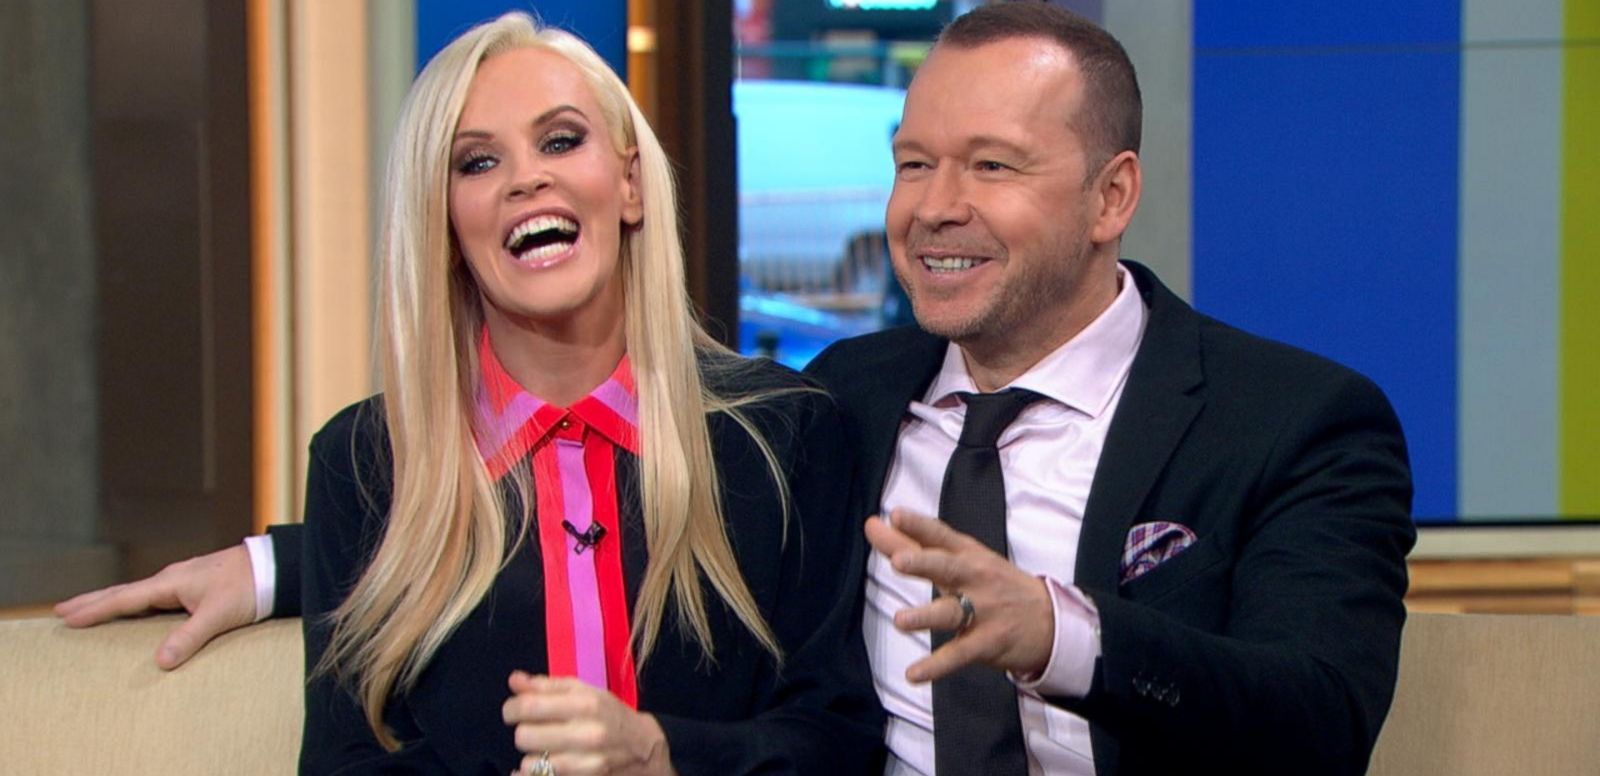 VIDEO: Donnie Wahlberg and Jenny McCarthy on New Reality Show